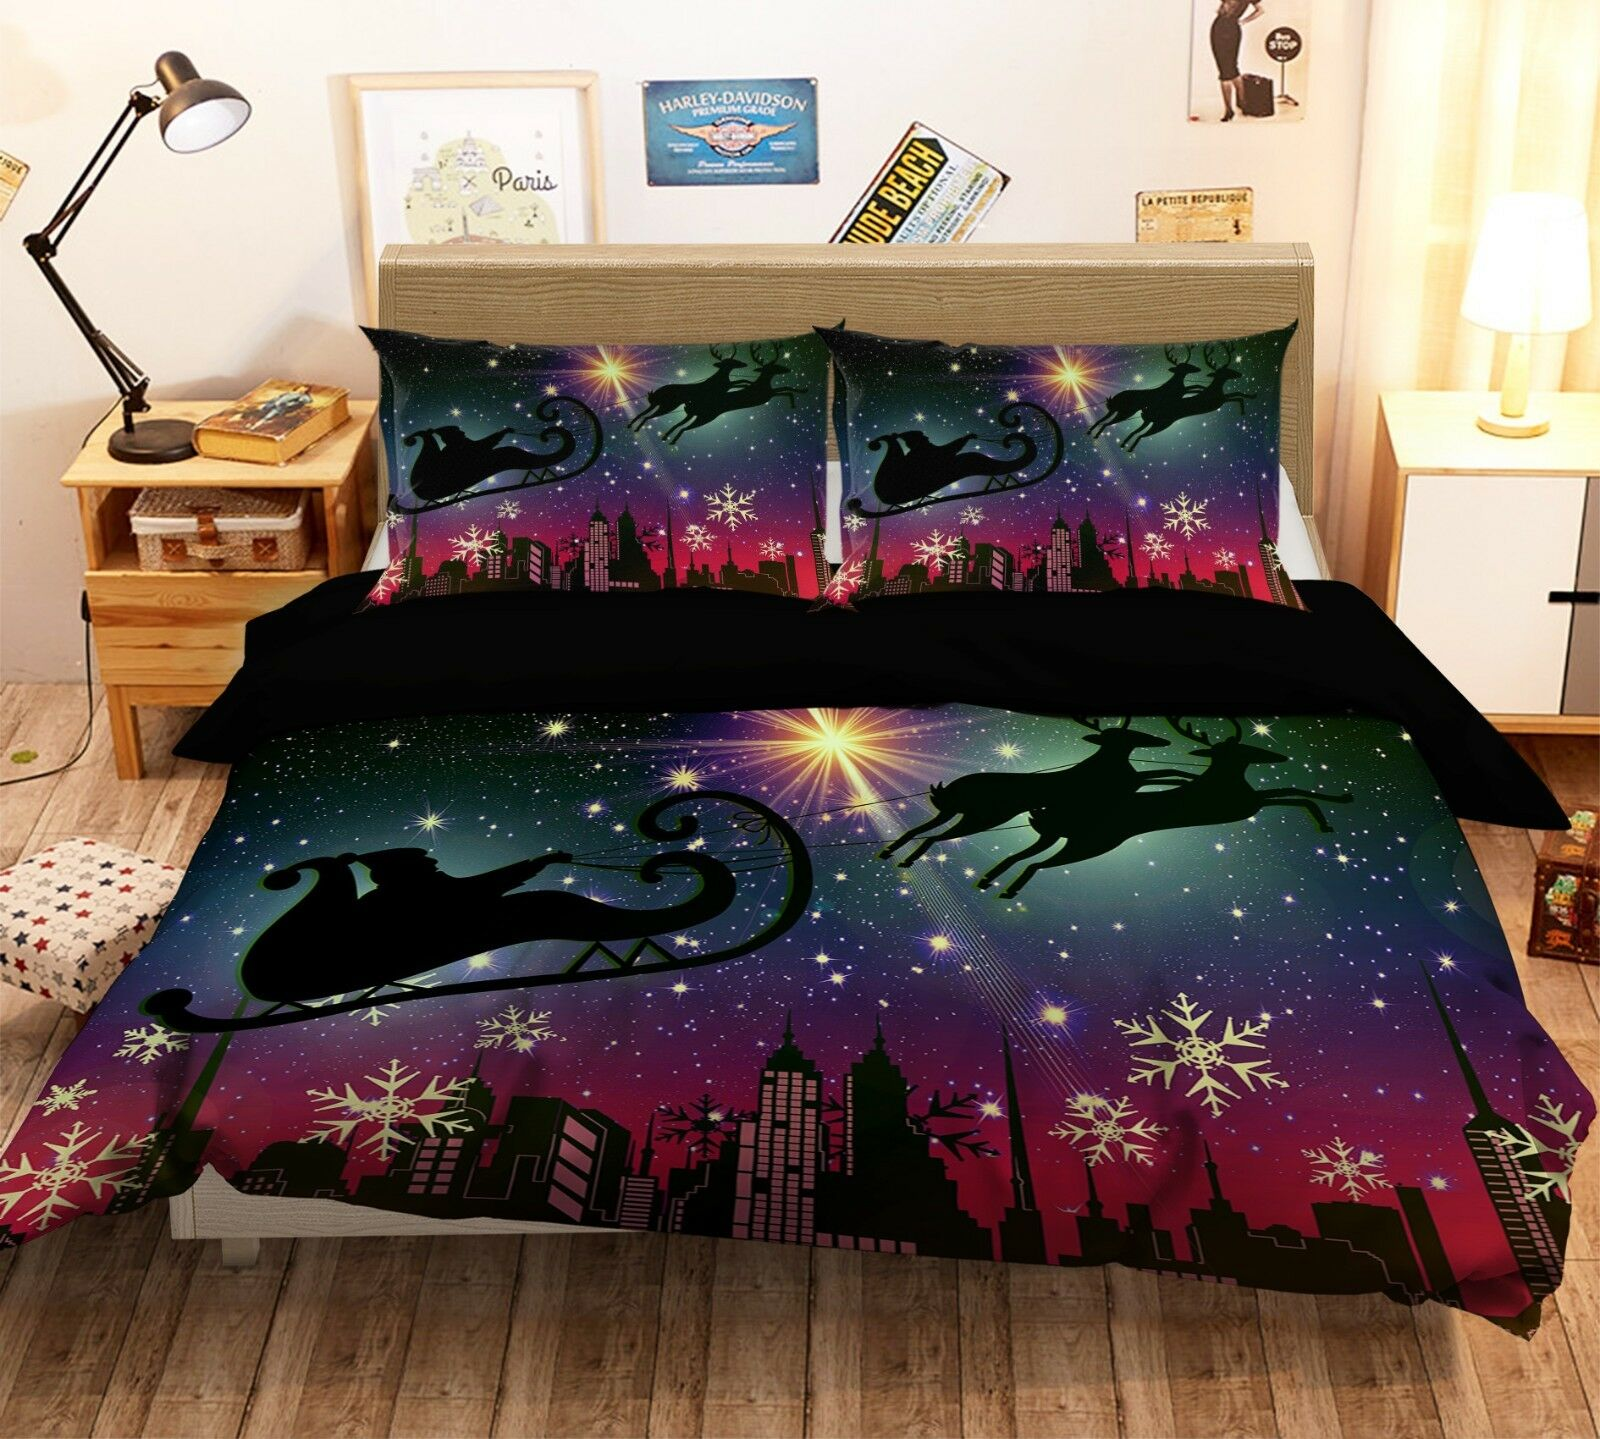 3D Christmas Xmas 522 Bed Pillowcases Quilt Duvet Cover Set Single Queen King AU